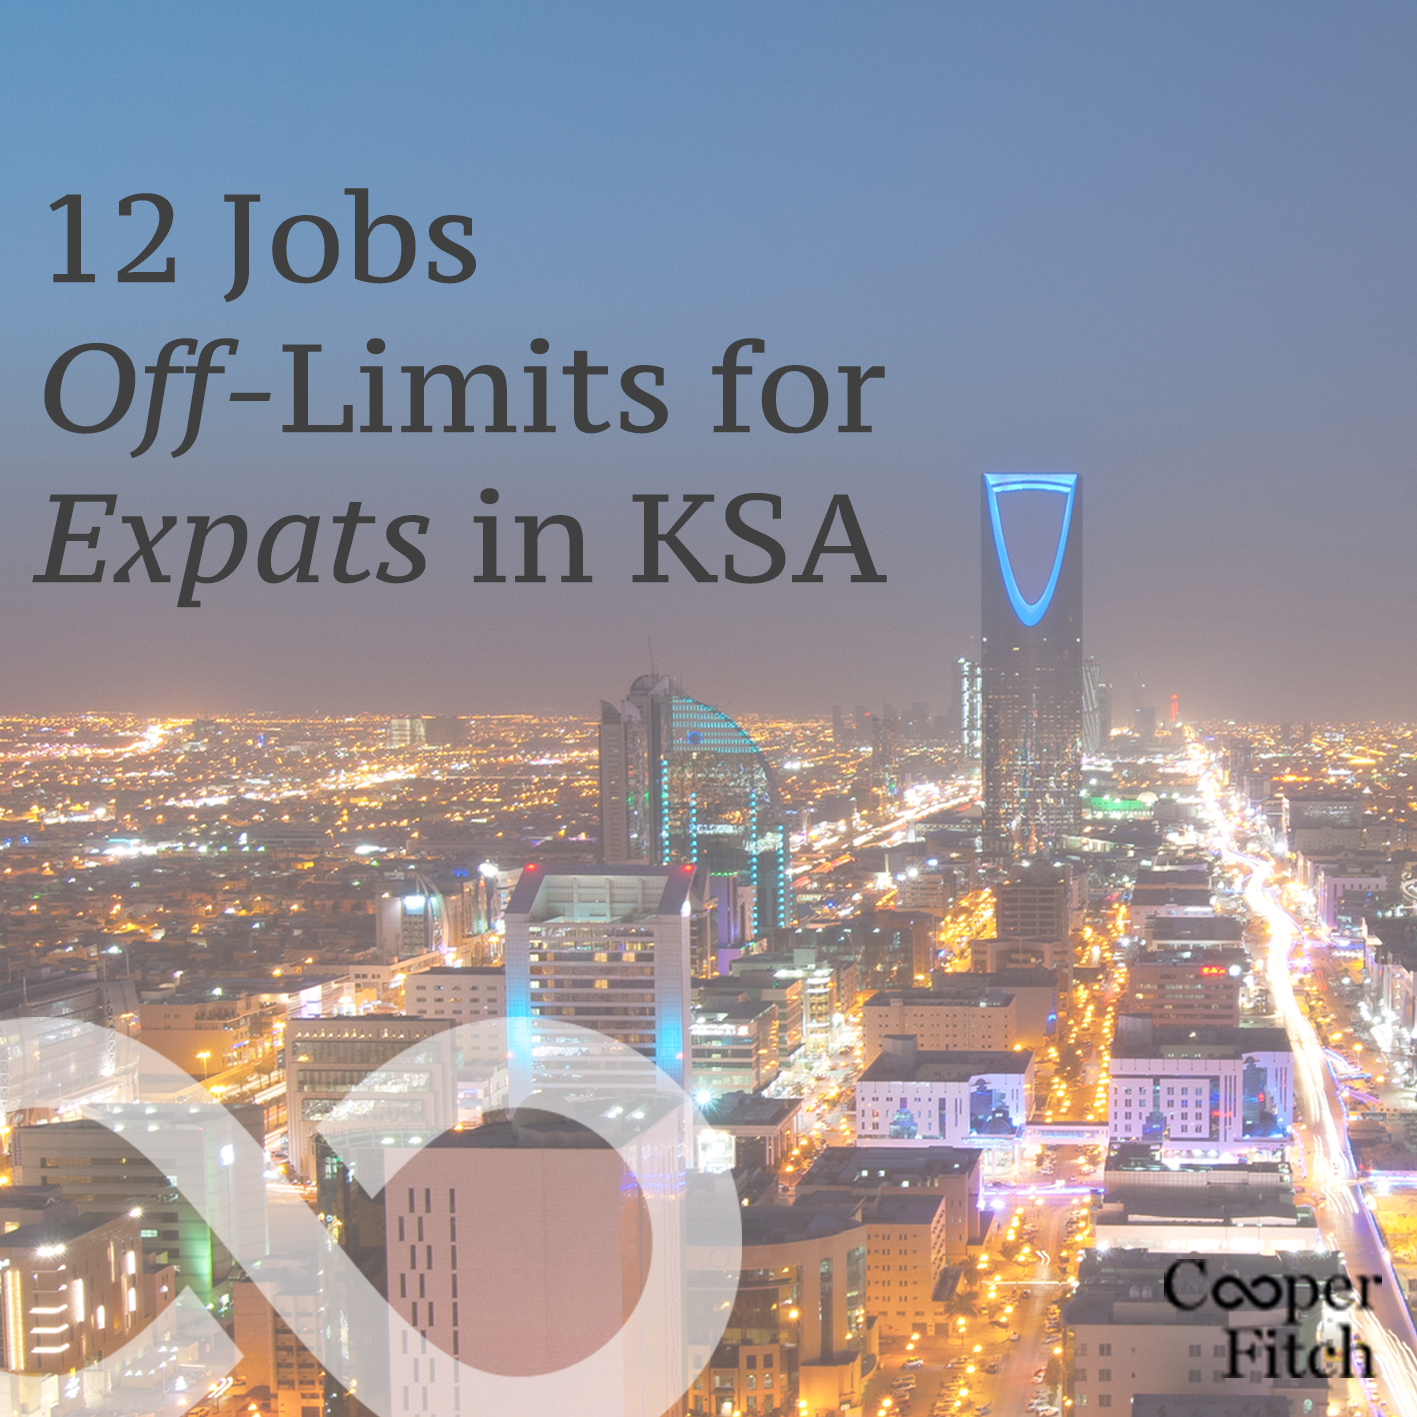 Job Market in KSA